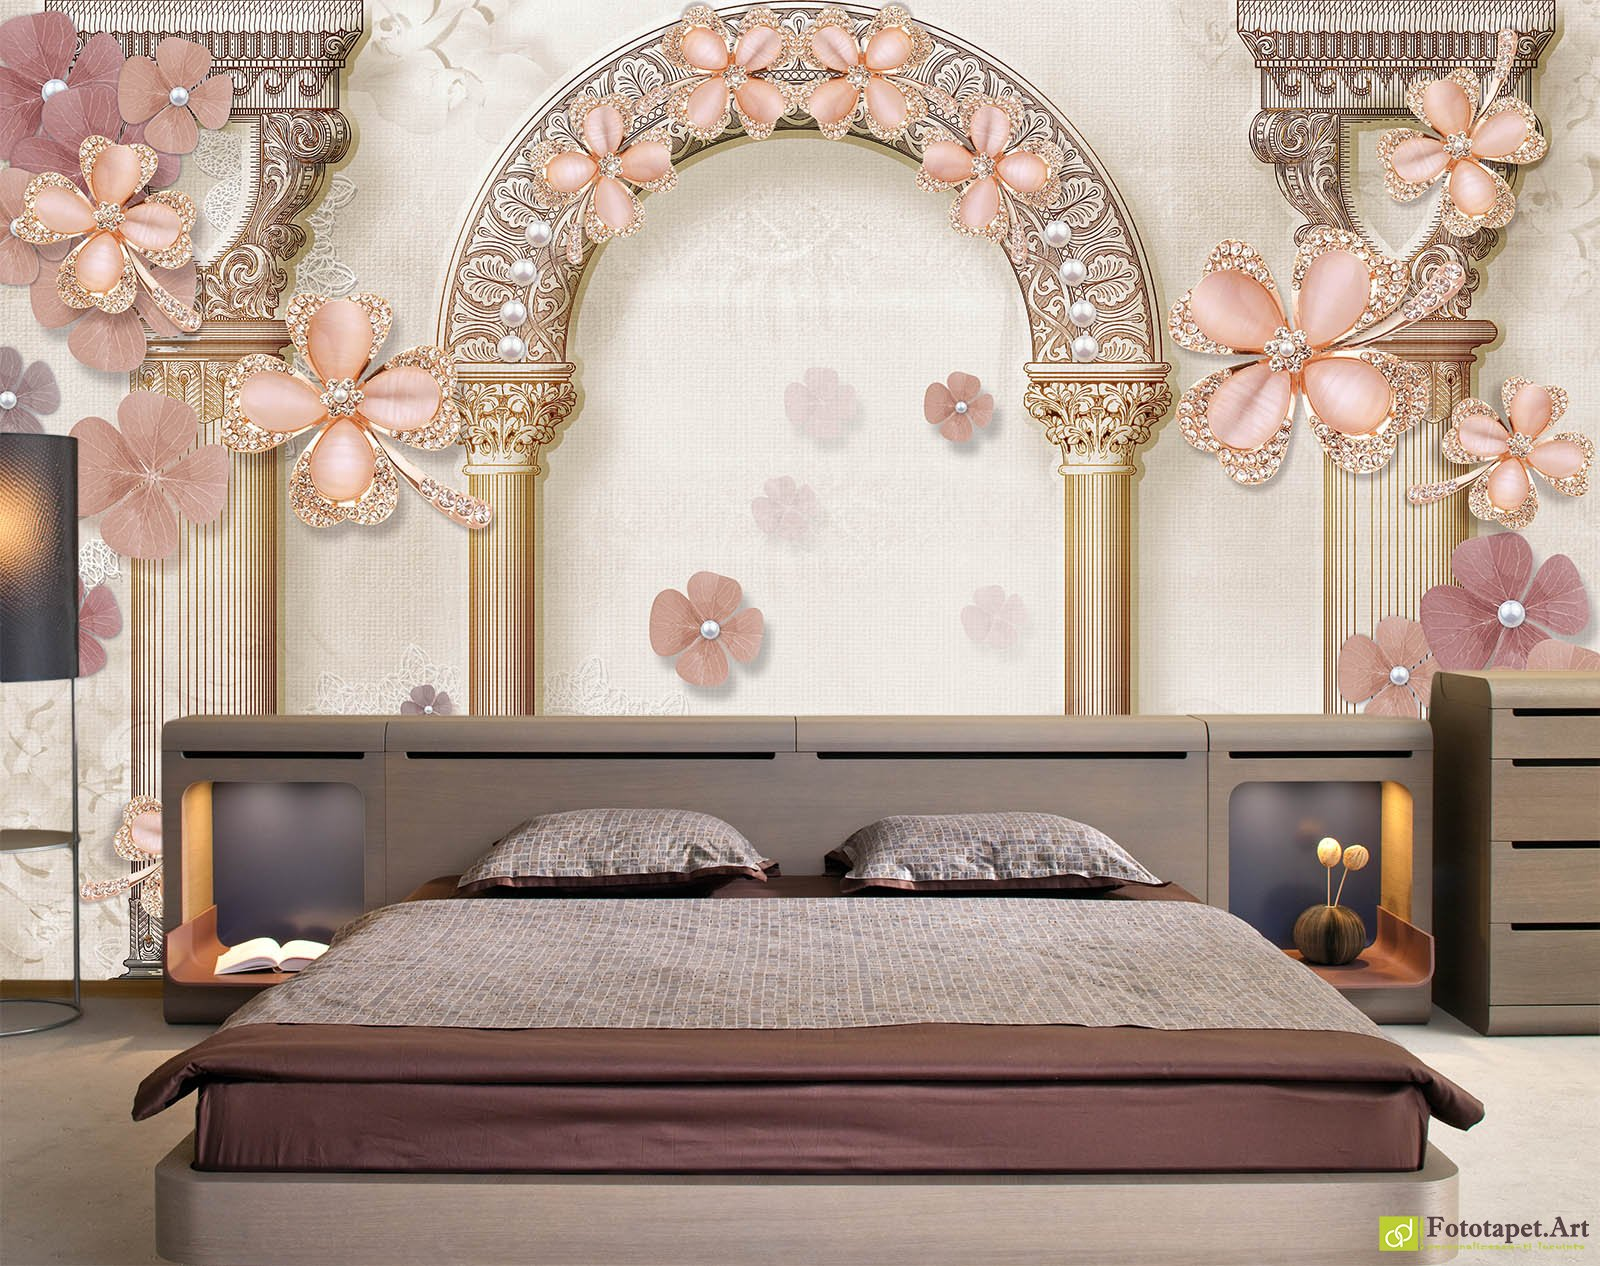 printing for bedroom mountains england wall murals mural cwm lovely services of decor colorful